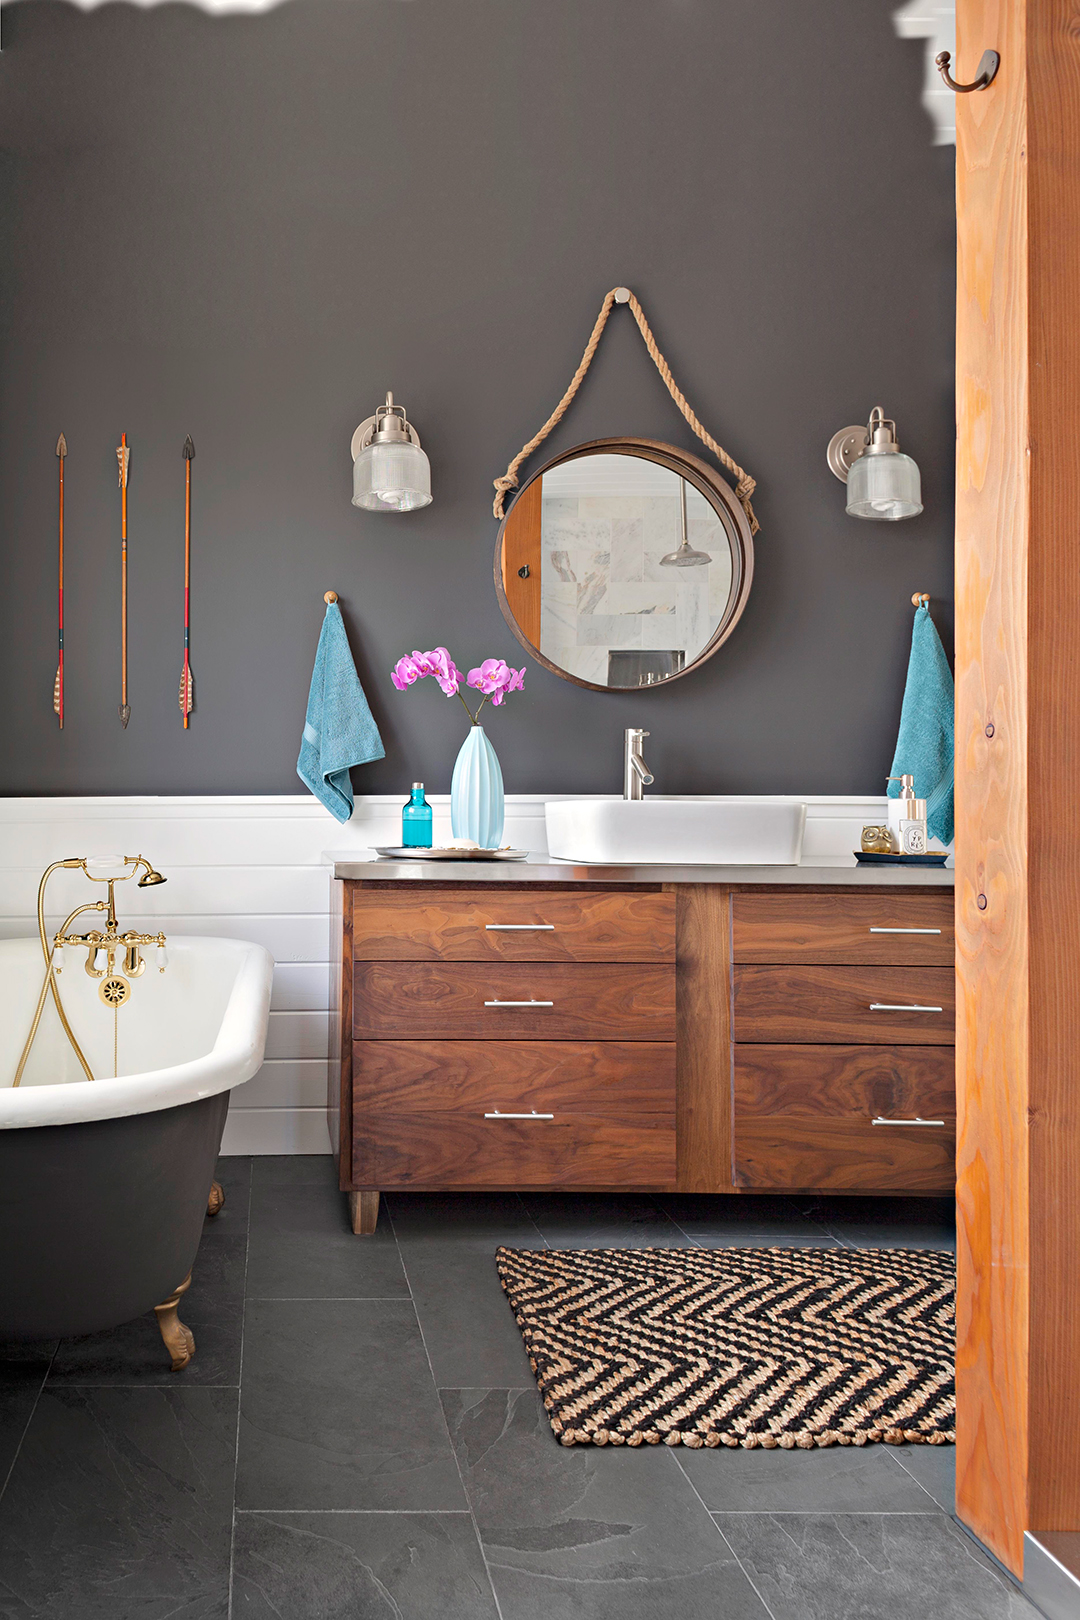 12 Popular Bathroom Paint Colors Our Editors Swear By Better Homes Gardens